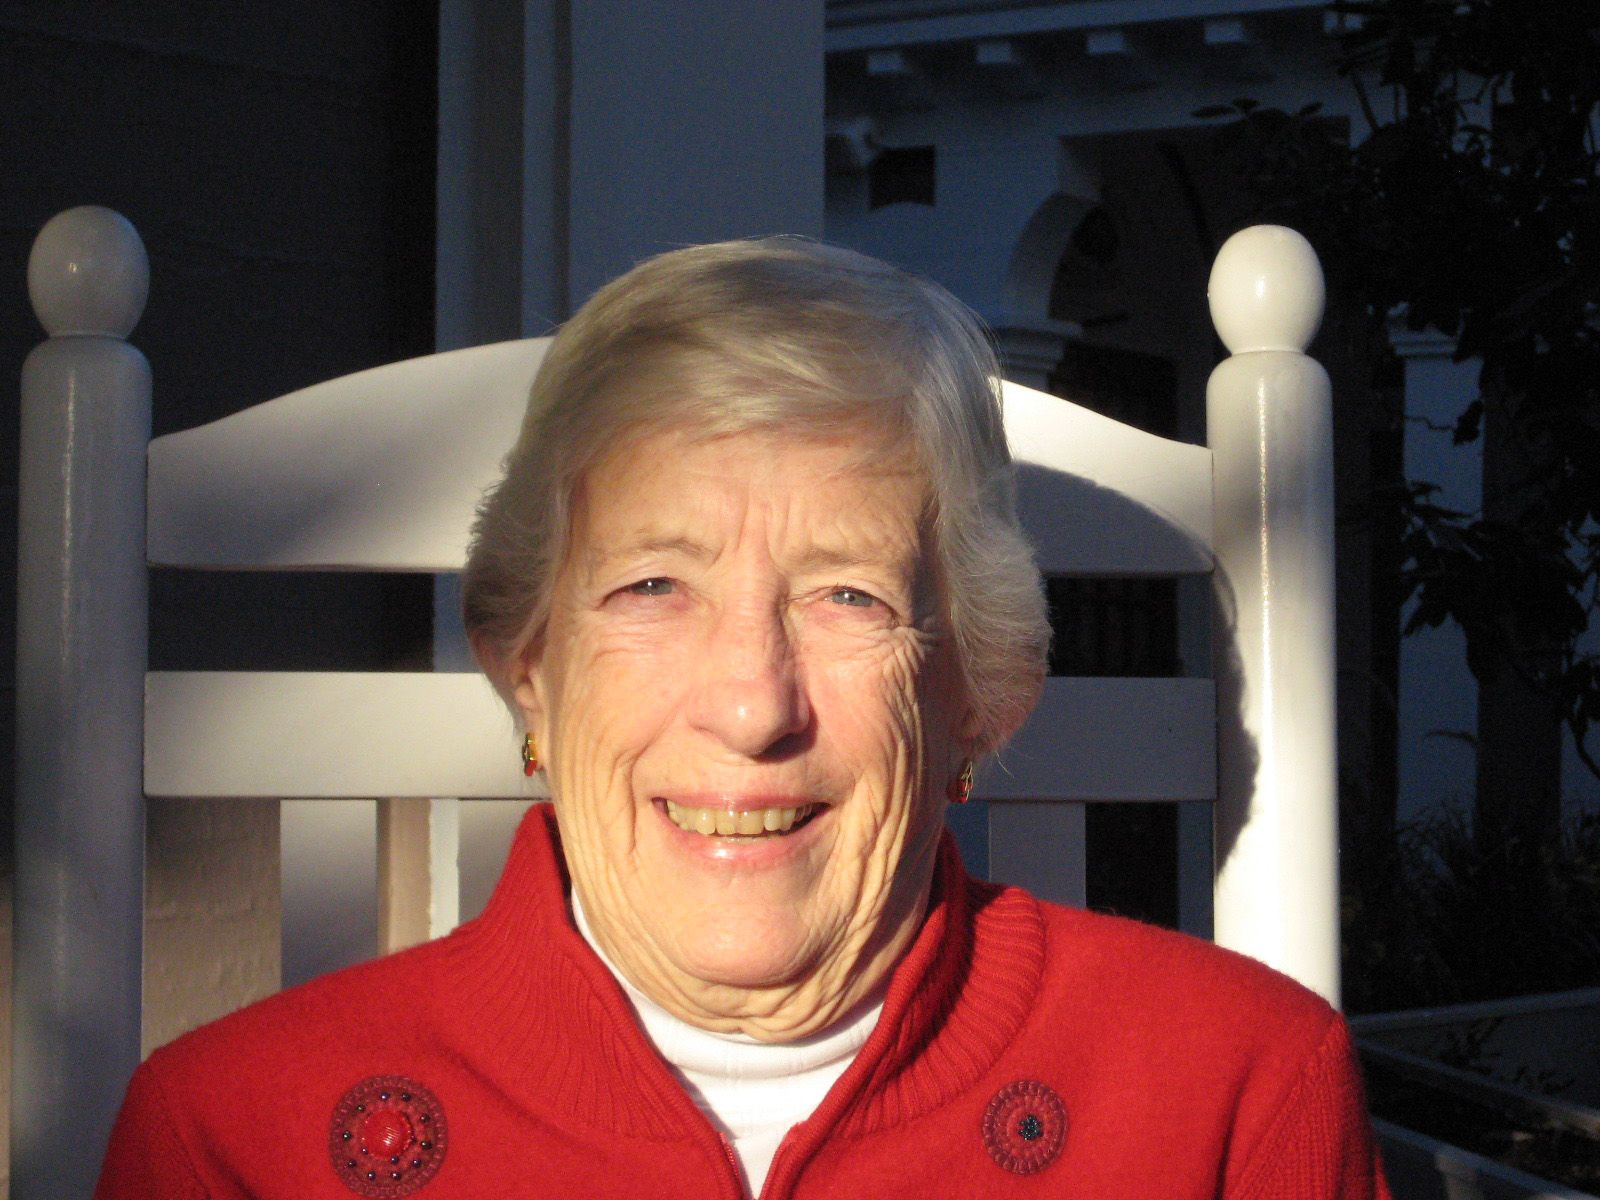 A visit with Daisy Crane, (Mrs. George Crane '53) in Concord, MA on November 13, 2013